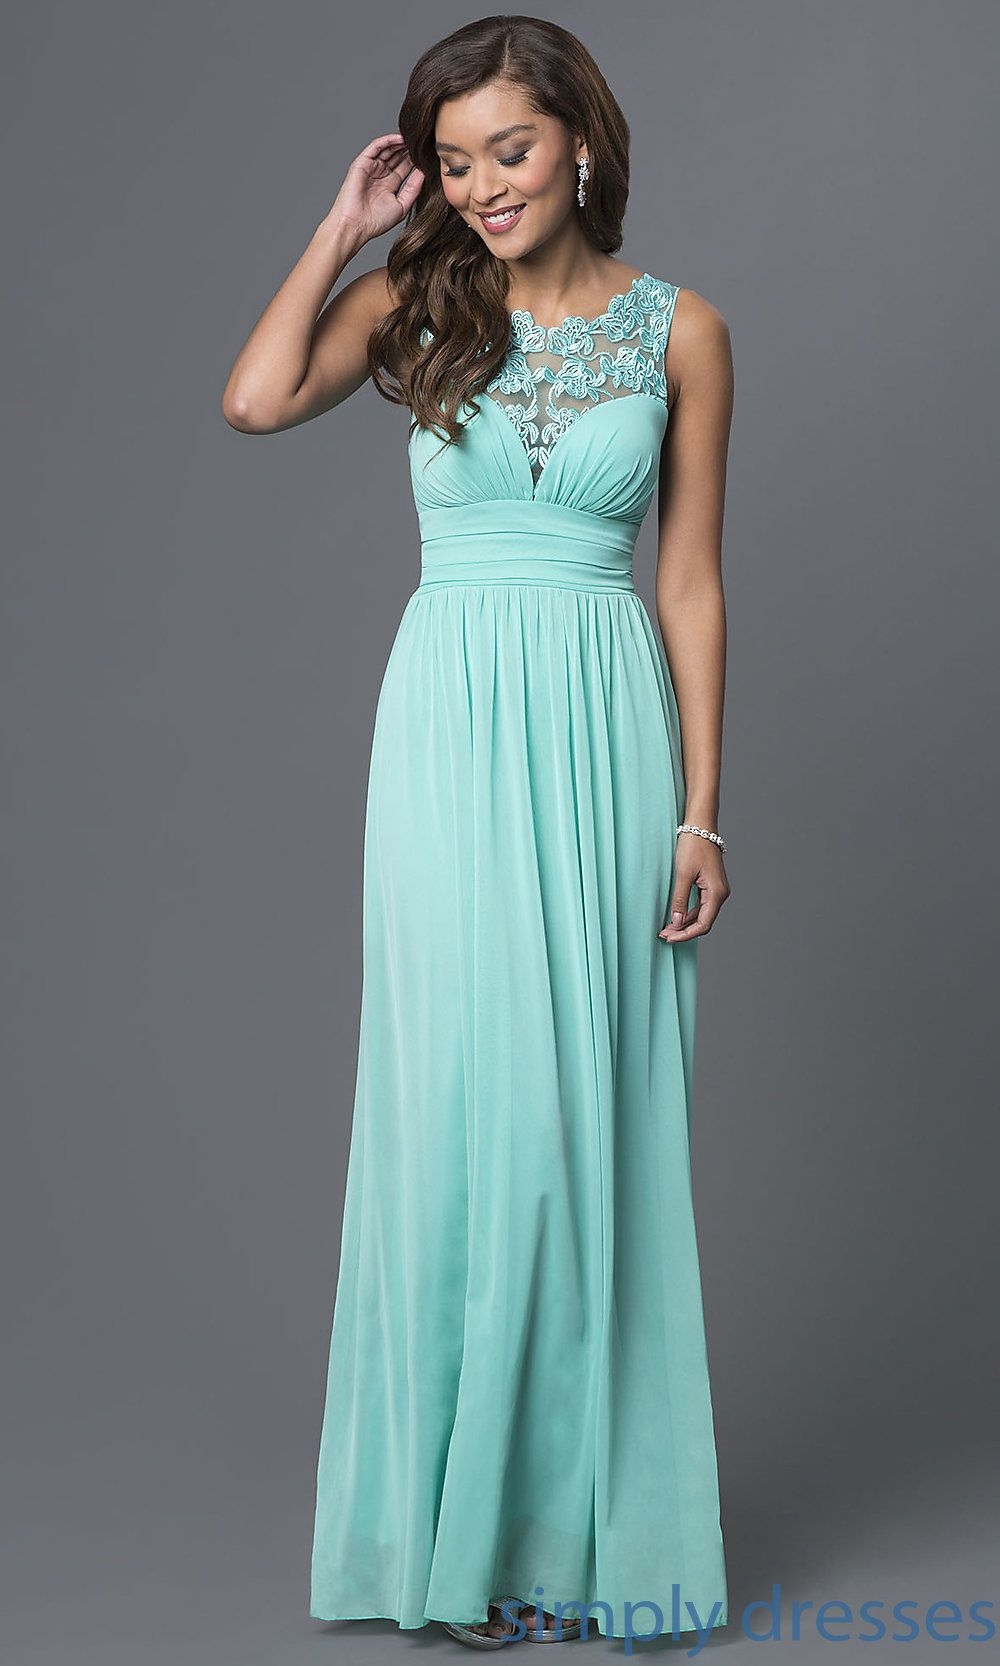 Shop for cheap prom dresses under $100 at SimplyDresses. Lace trim ...